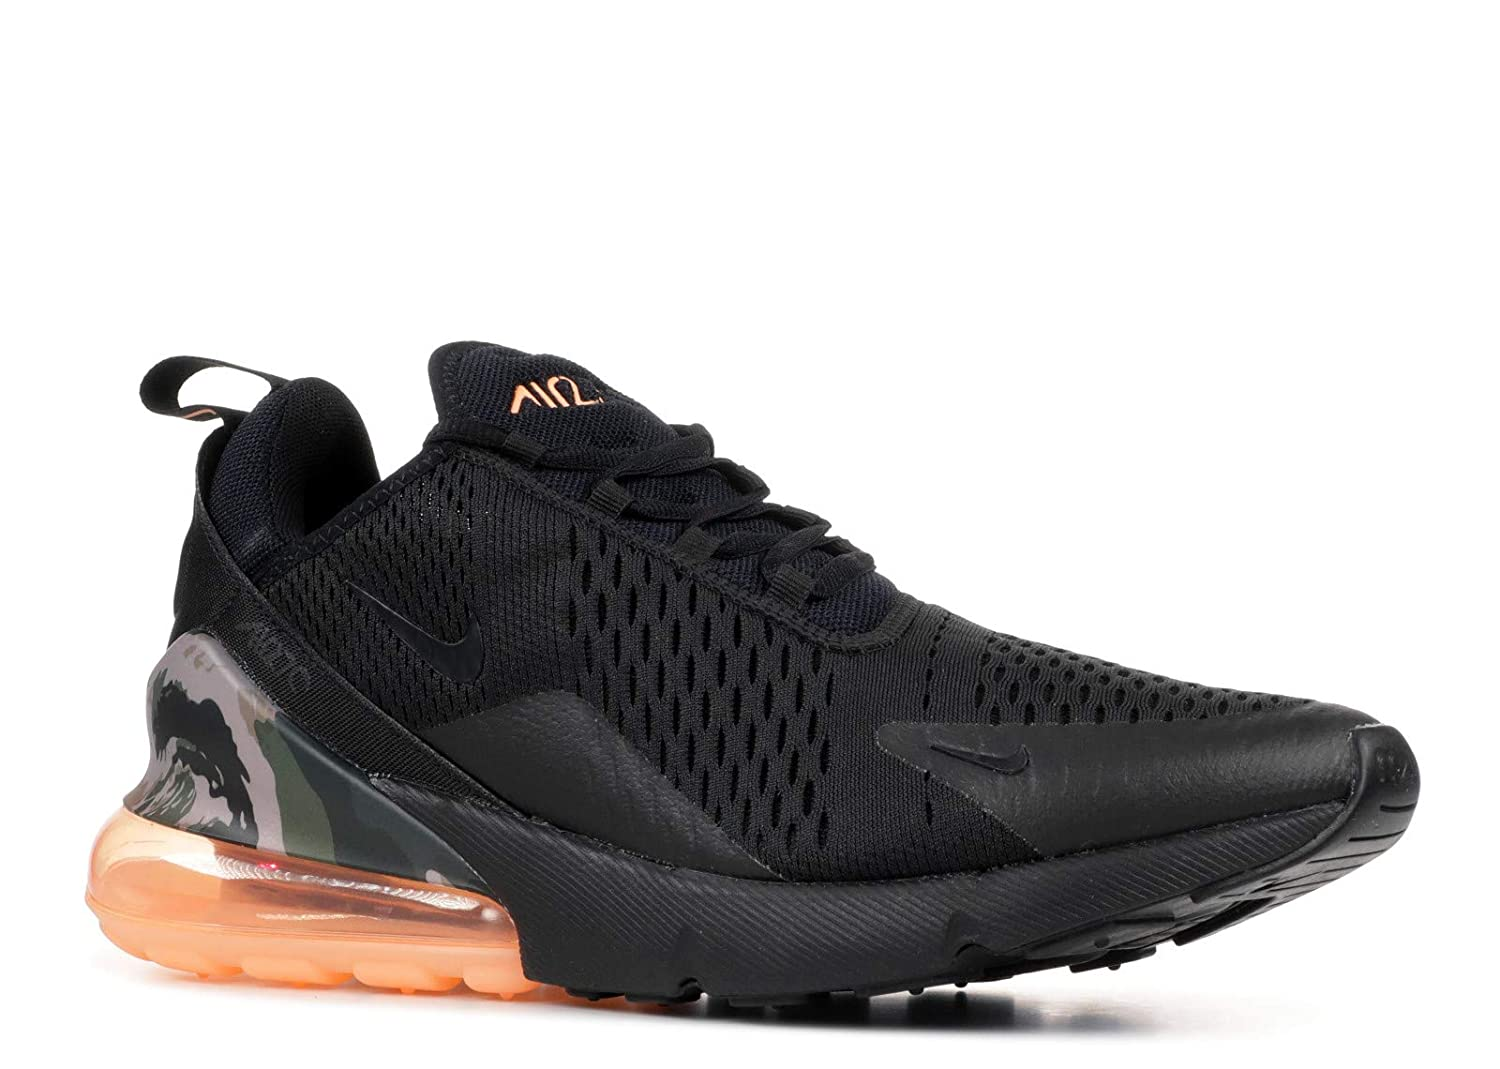 huge selection of de635 1bf96 Nike AIR MAX 270 'CAMO Sunset' - AQ6239-001 - Size 9.5 ...